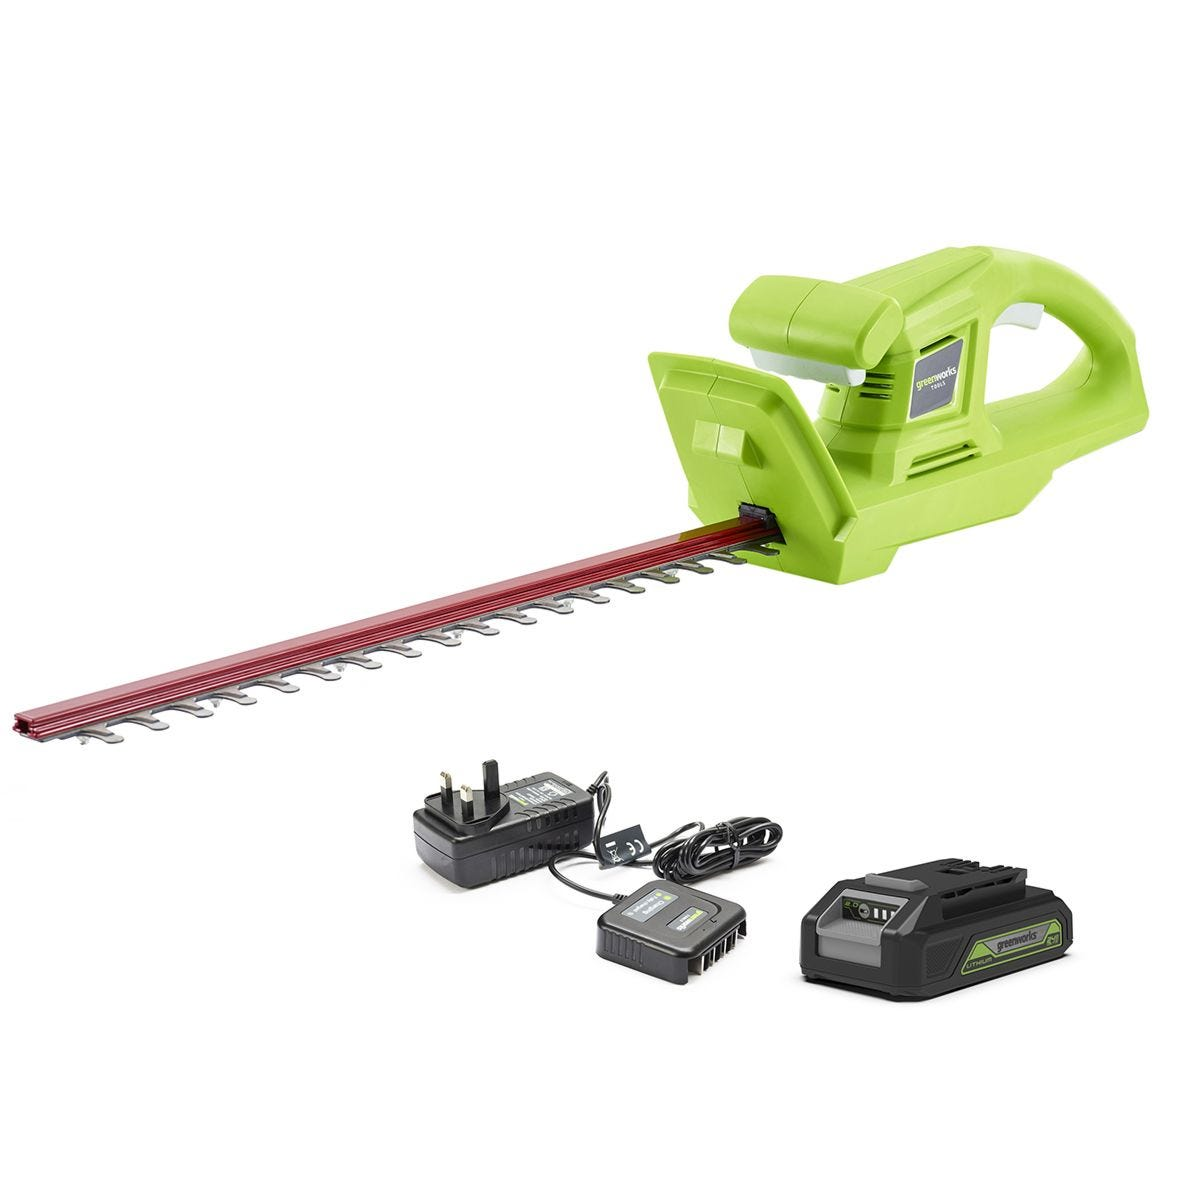 Greenworks 24v Cordless Hedge Trimmer with 2Ah Lithium-ion Battery and Charger